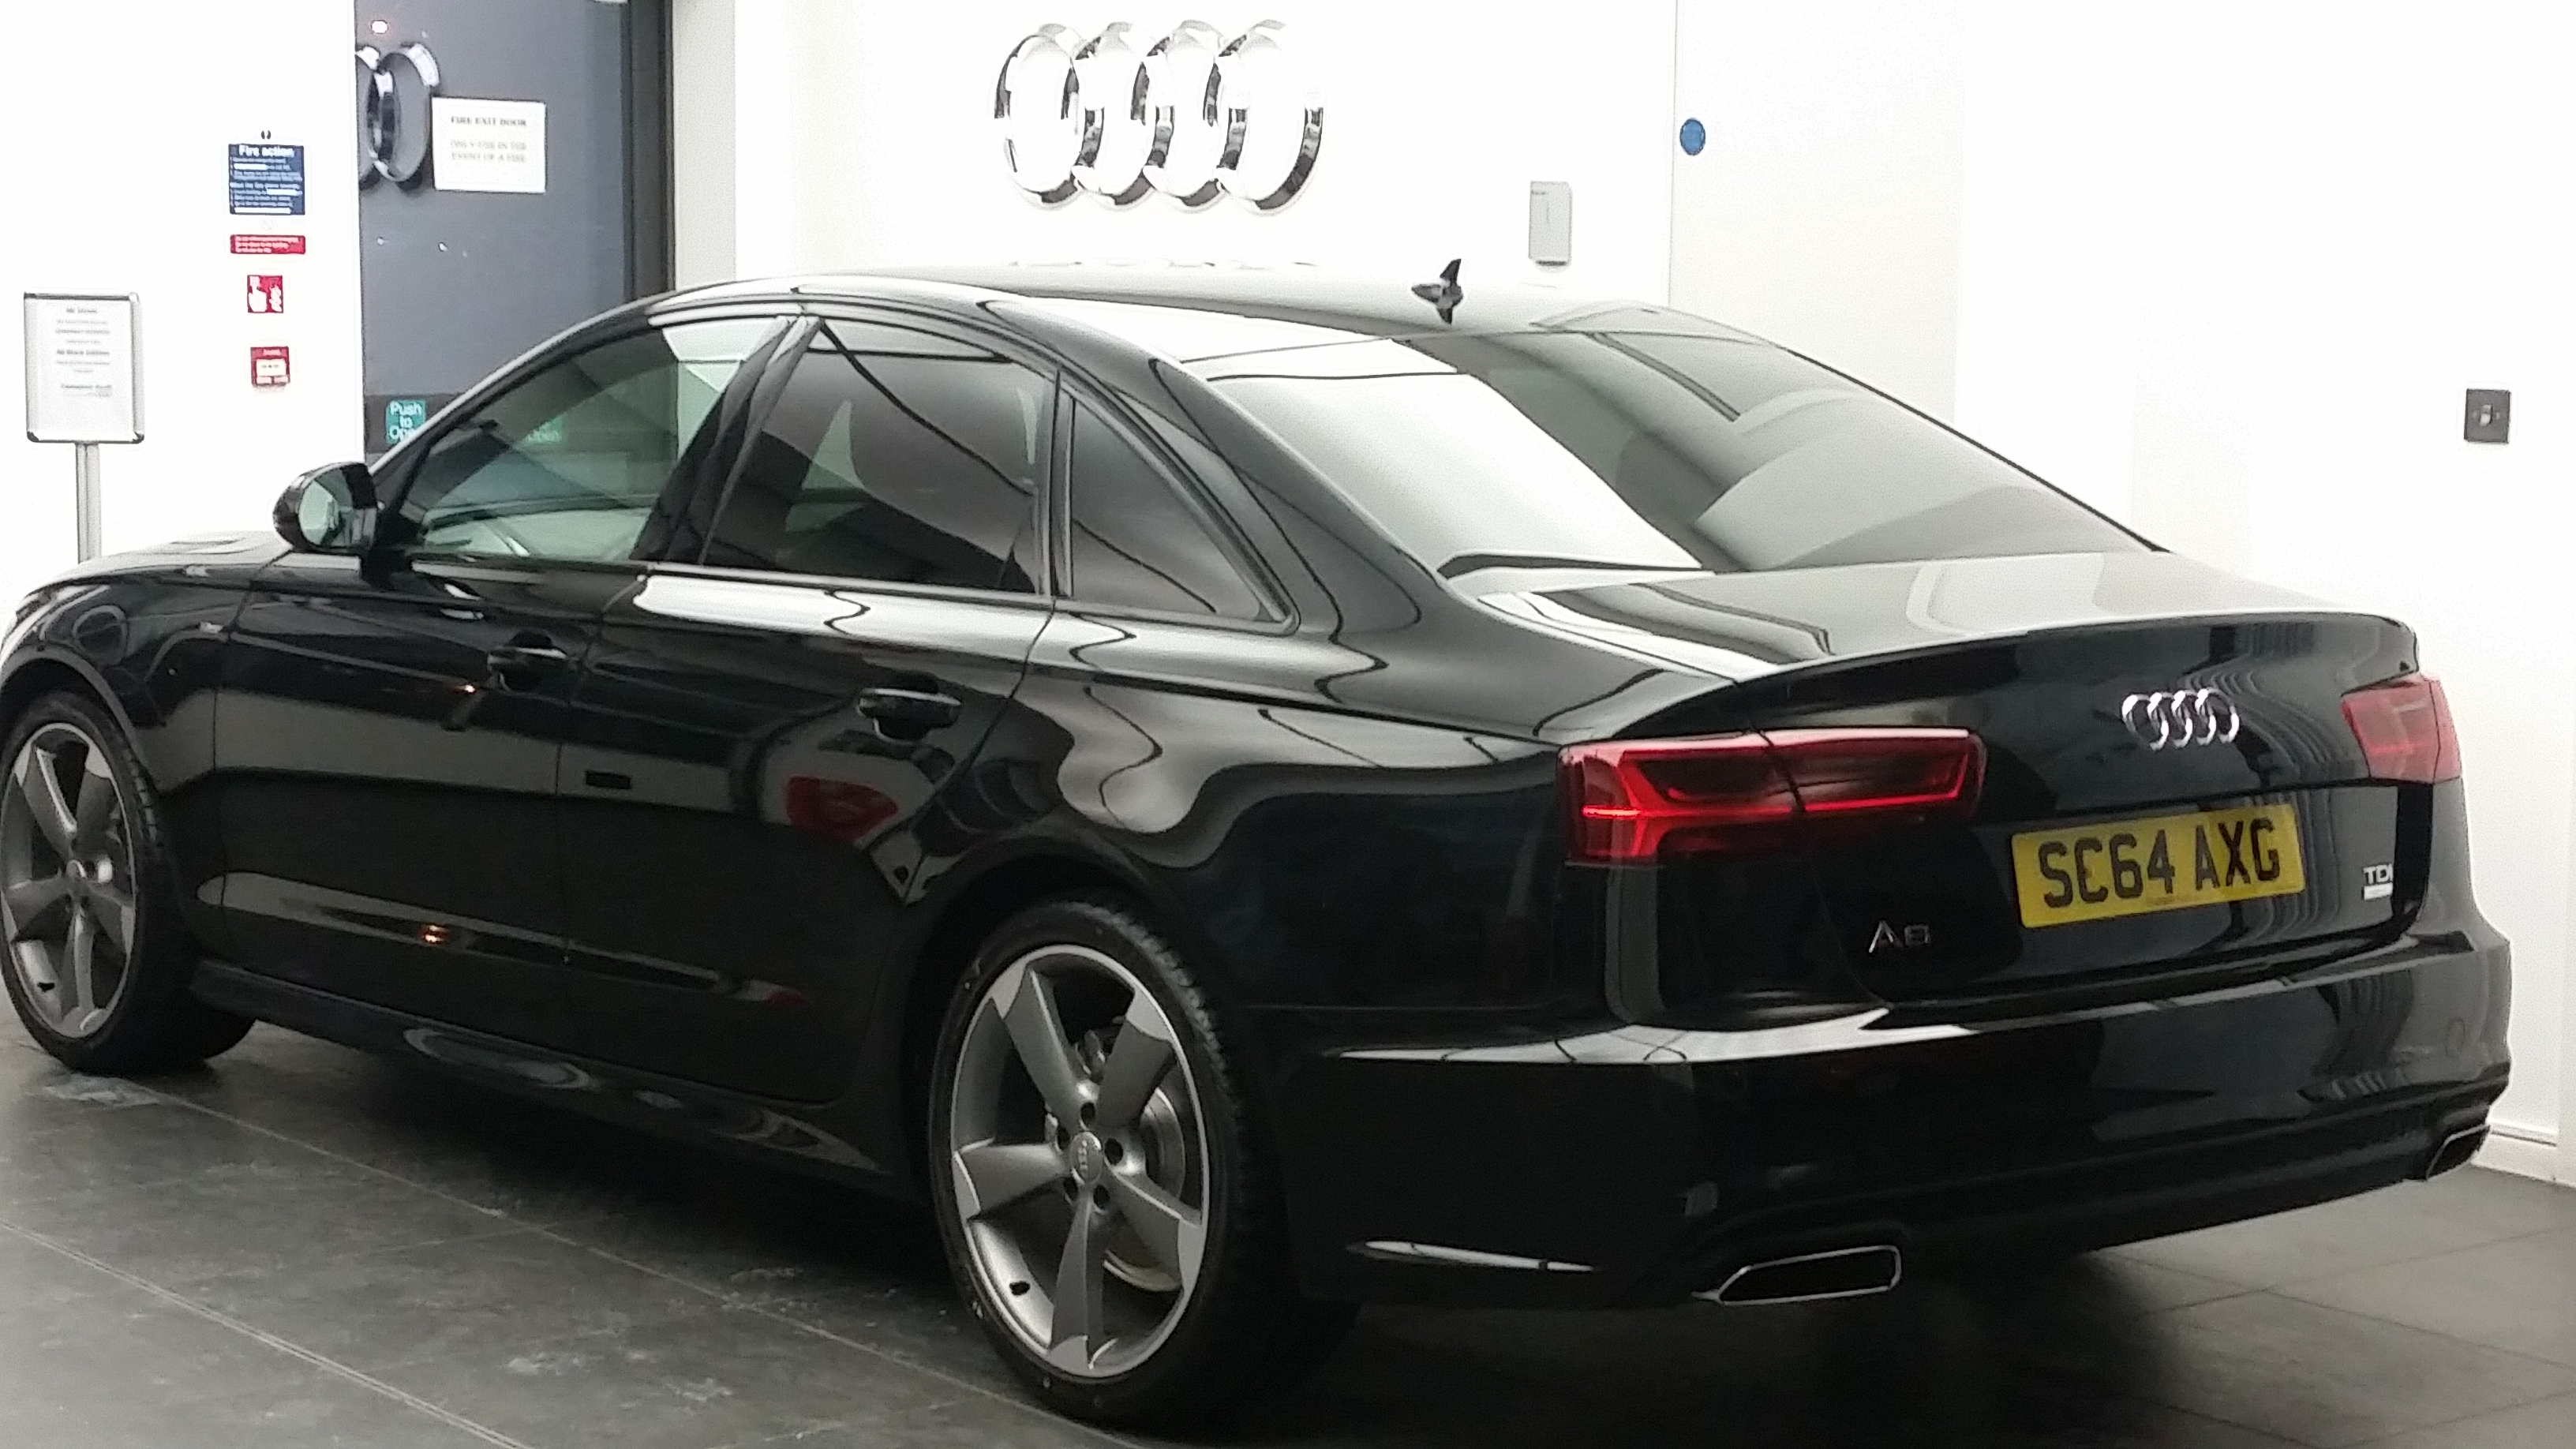 2015 Audi A6 C7 Pictures Information And Specs Auto